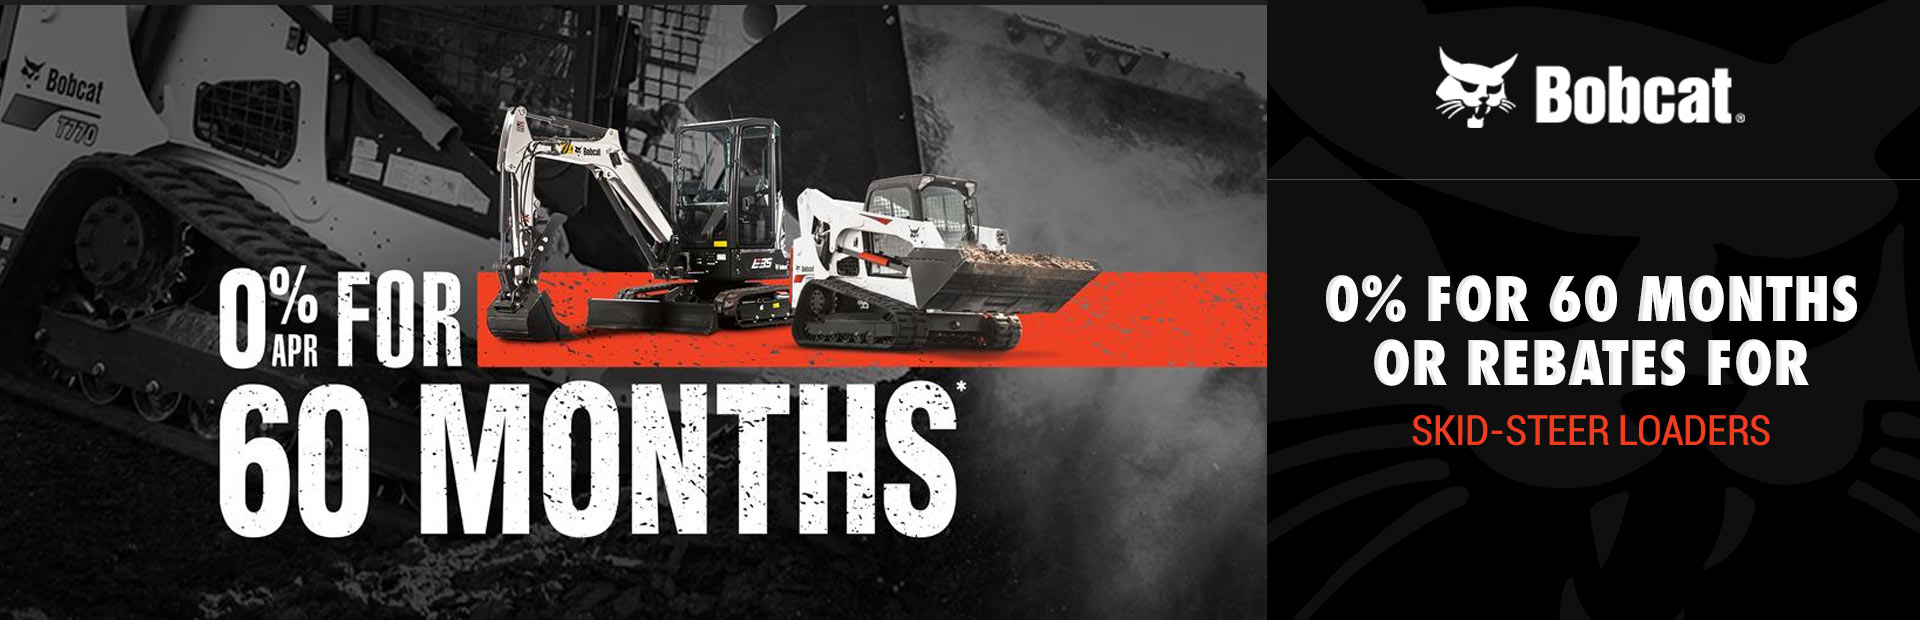 Bobcat: 0% for 60 Months Or Rebates for Skid-Steer Loaders